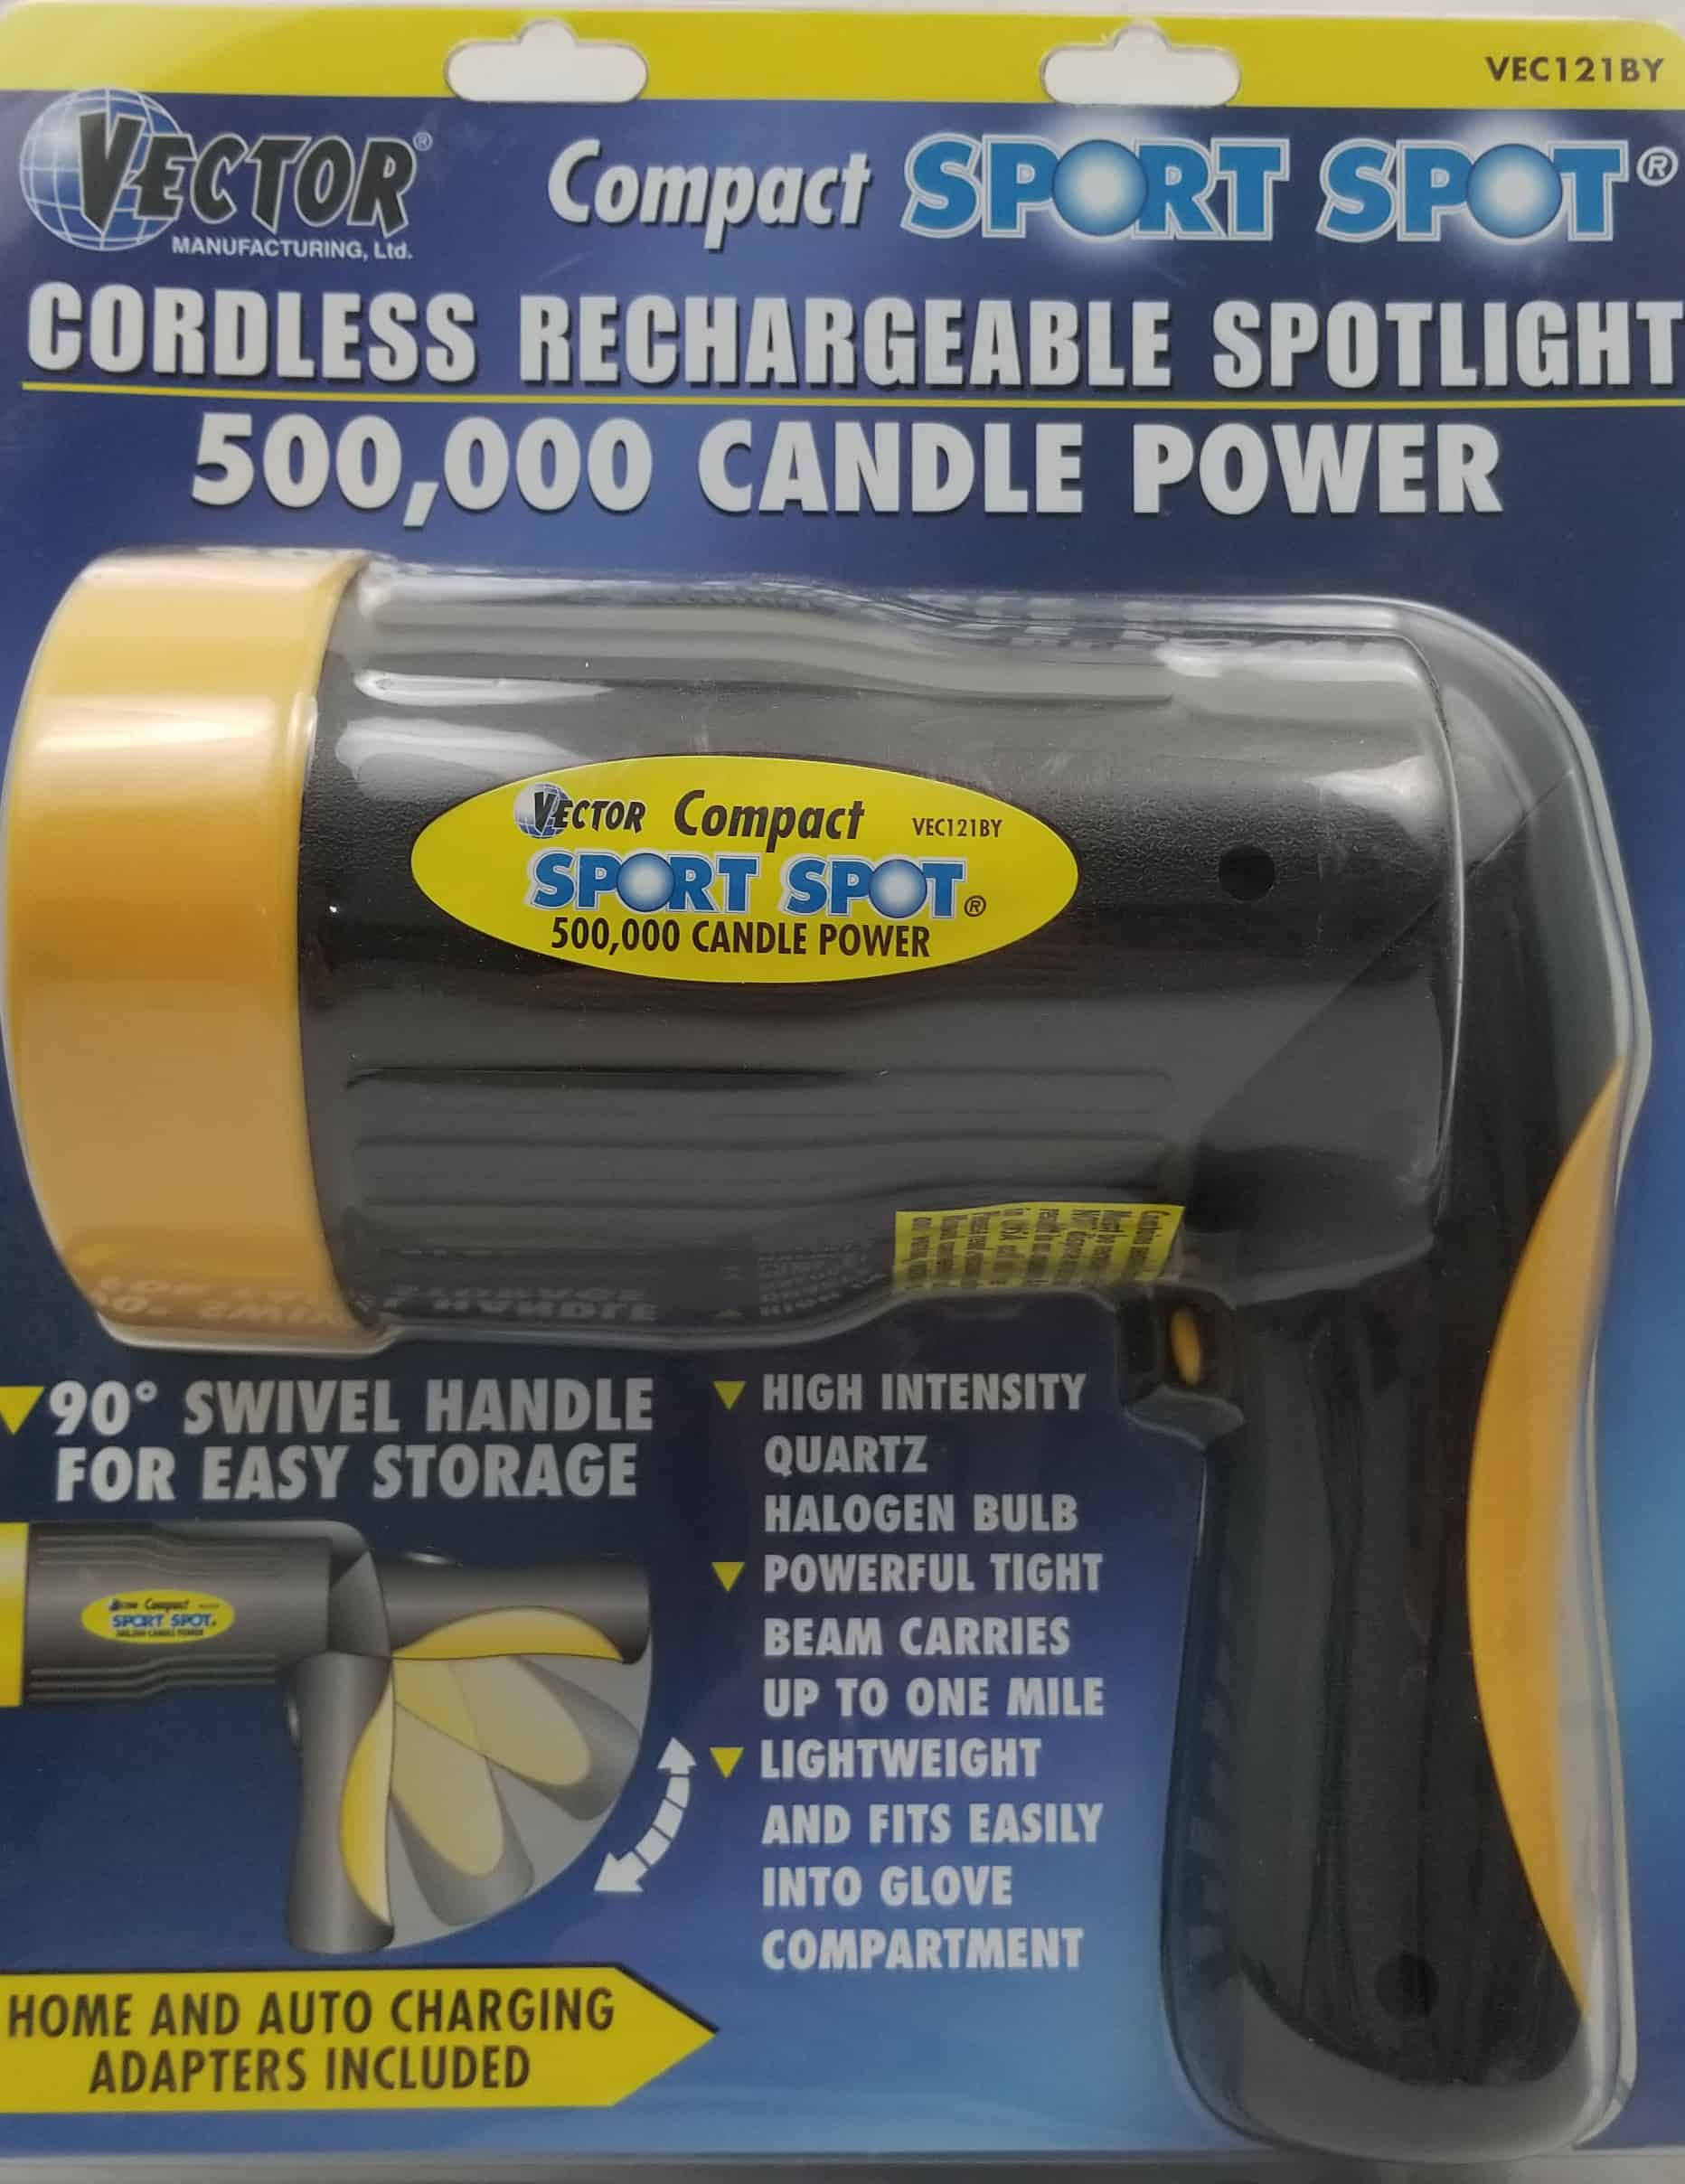 027121BY - Vector Compact Sport Spotlight 500,000 candles